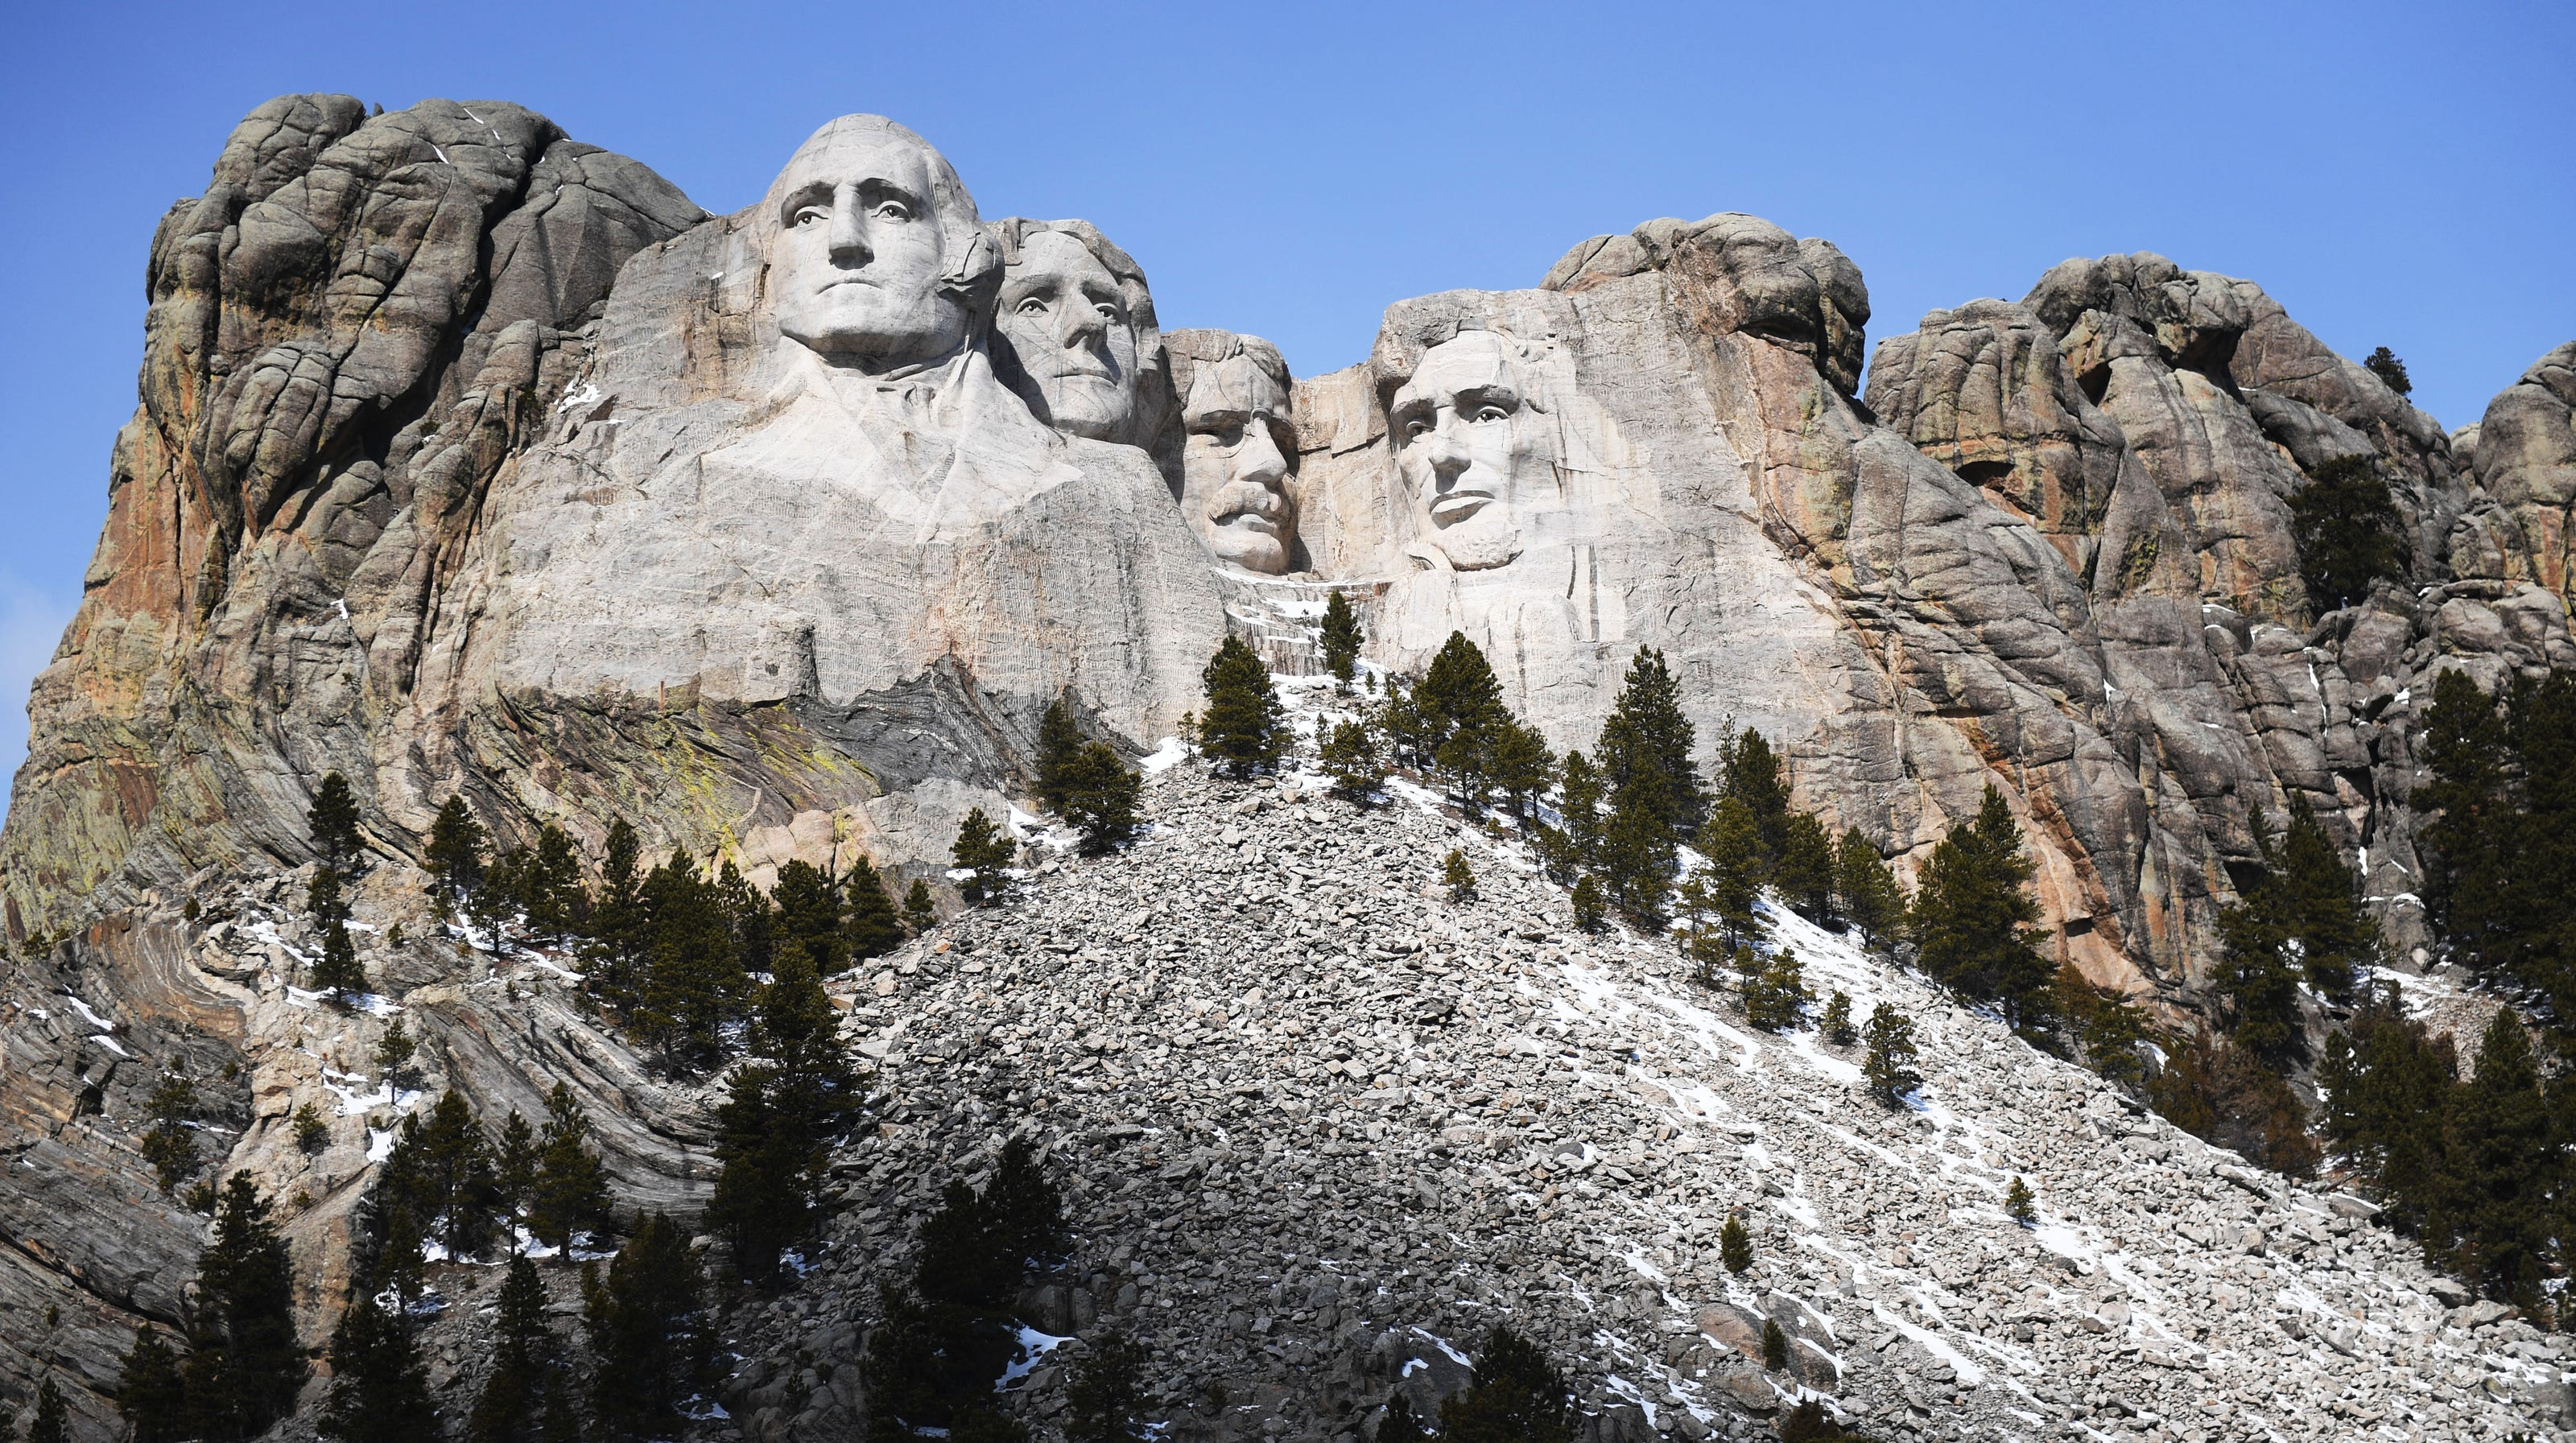 Mount Rushmore: Cheyenne Sioux River Tribe chairman calls for removal